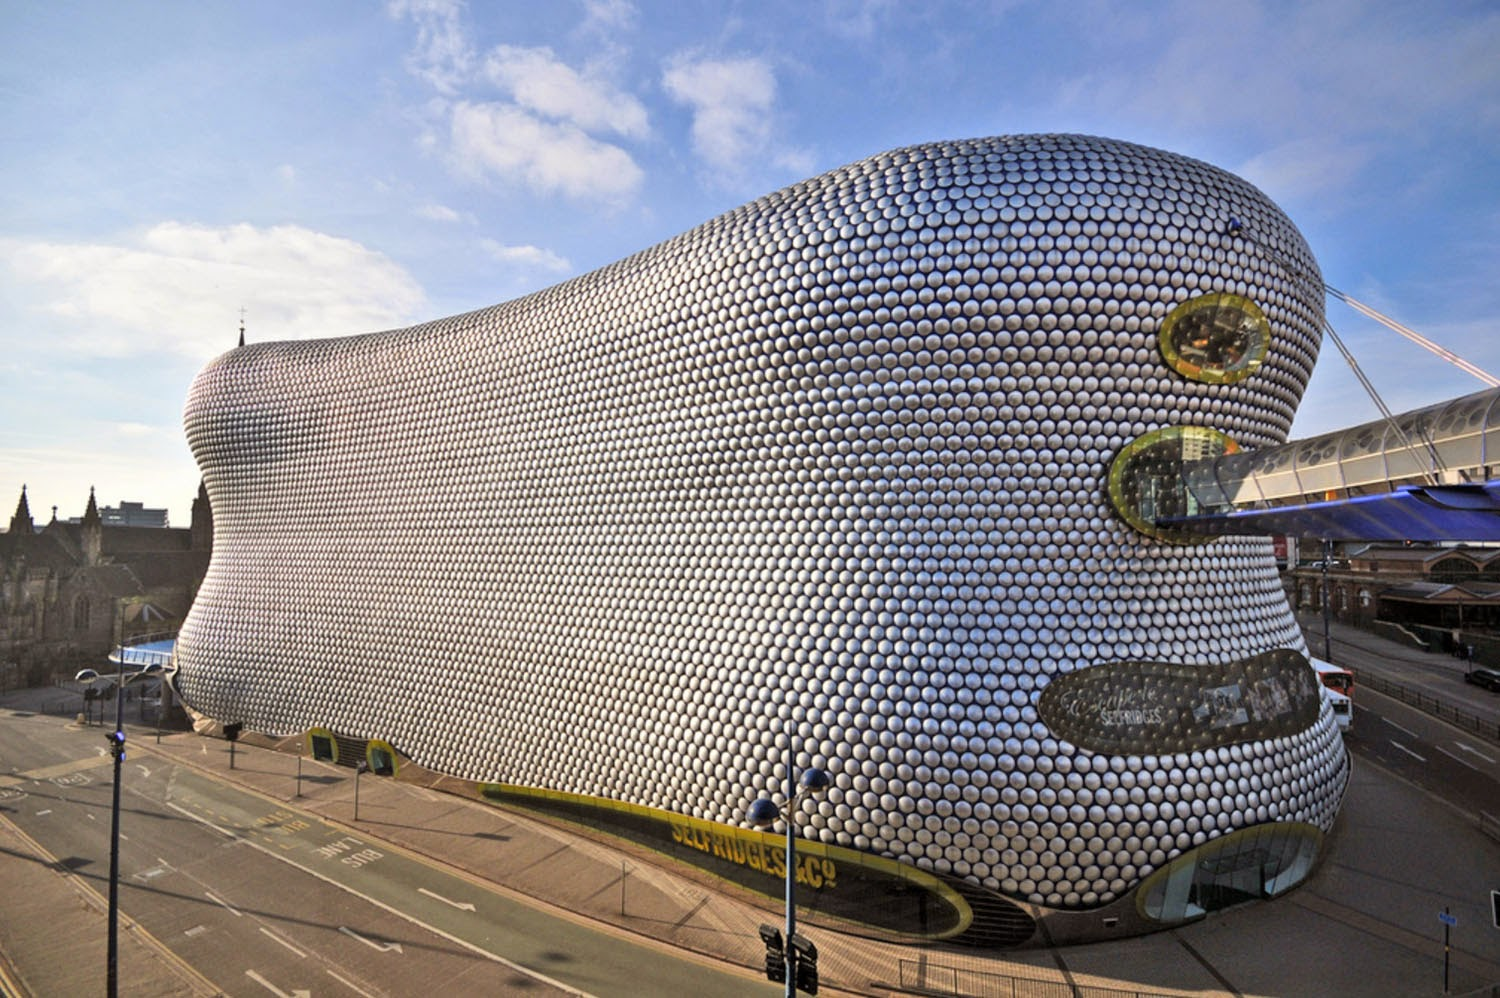 Selfridges Birmingham, UK